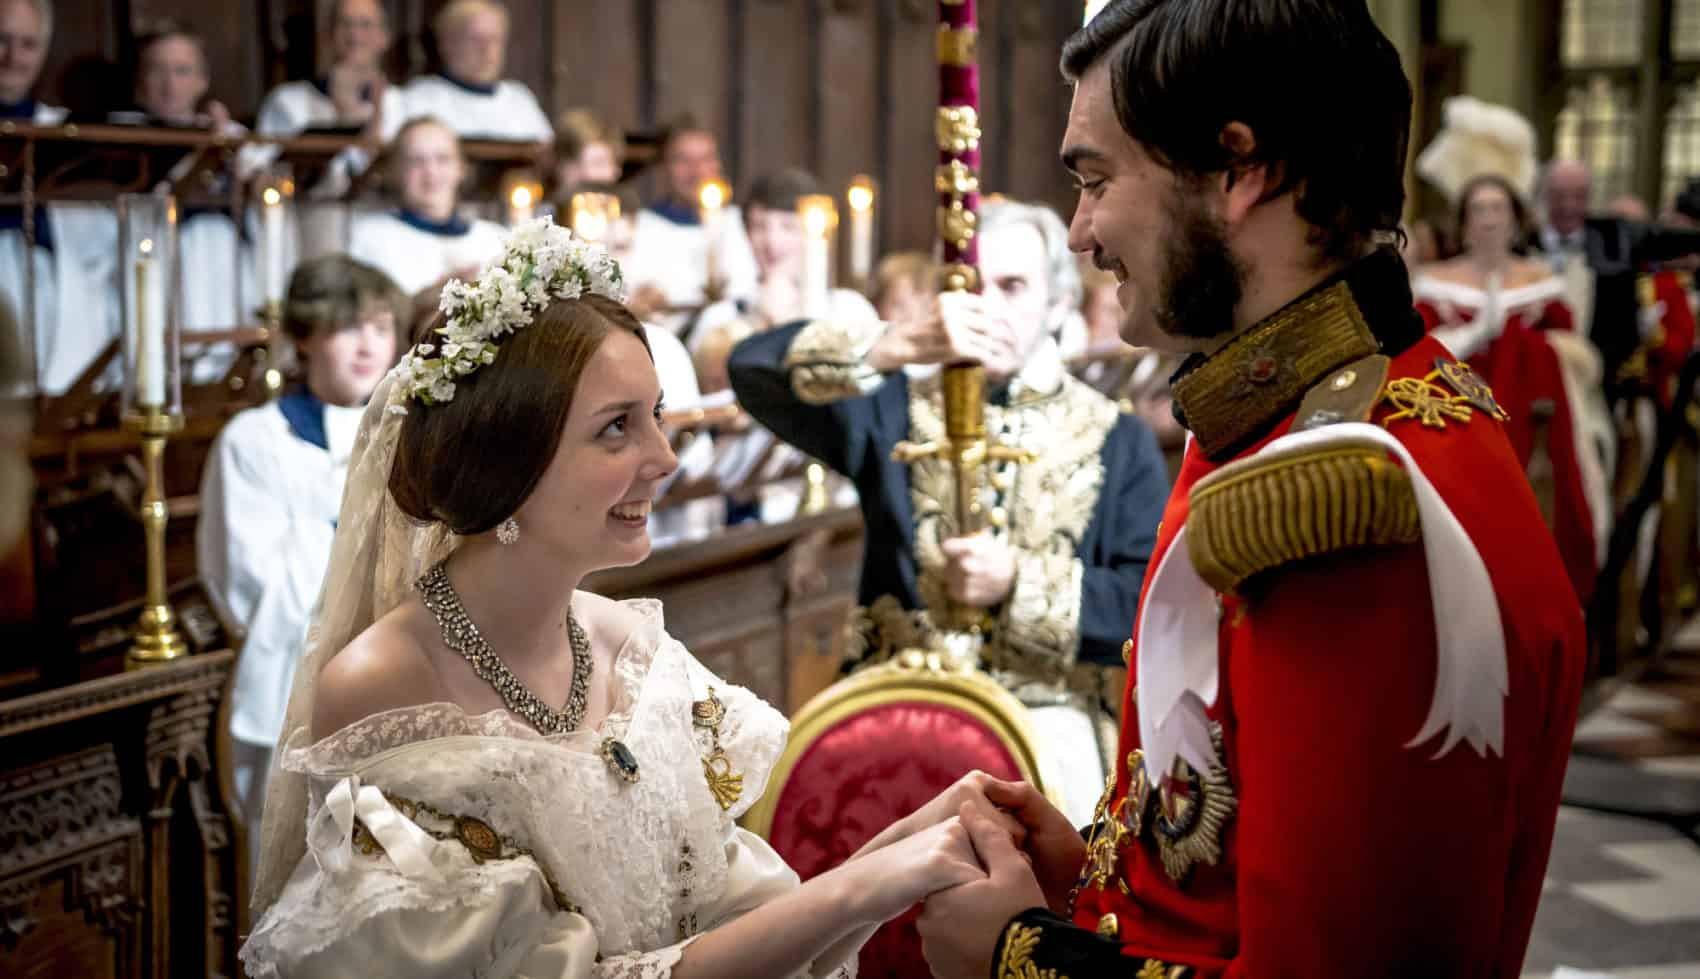 The royal weddings that changed European history 3